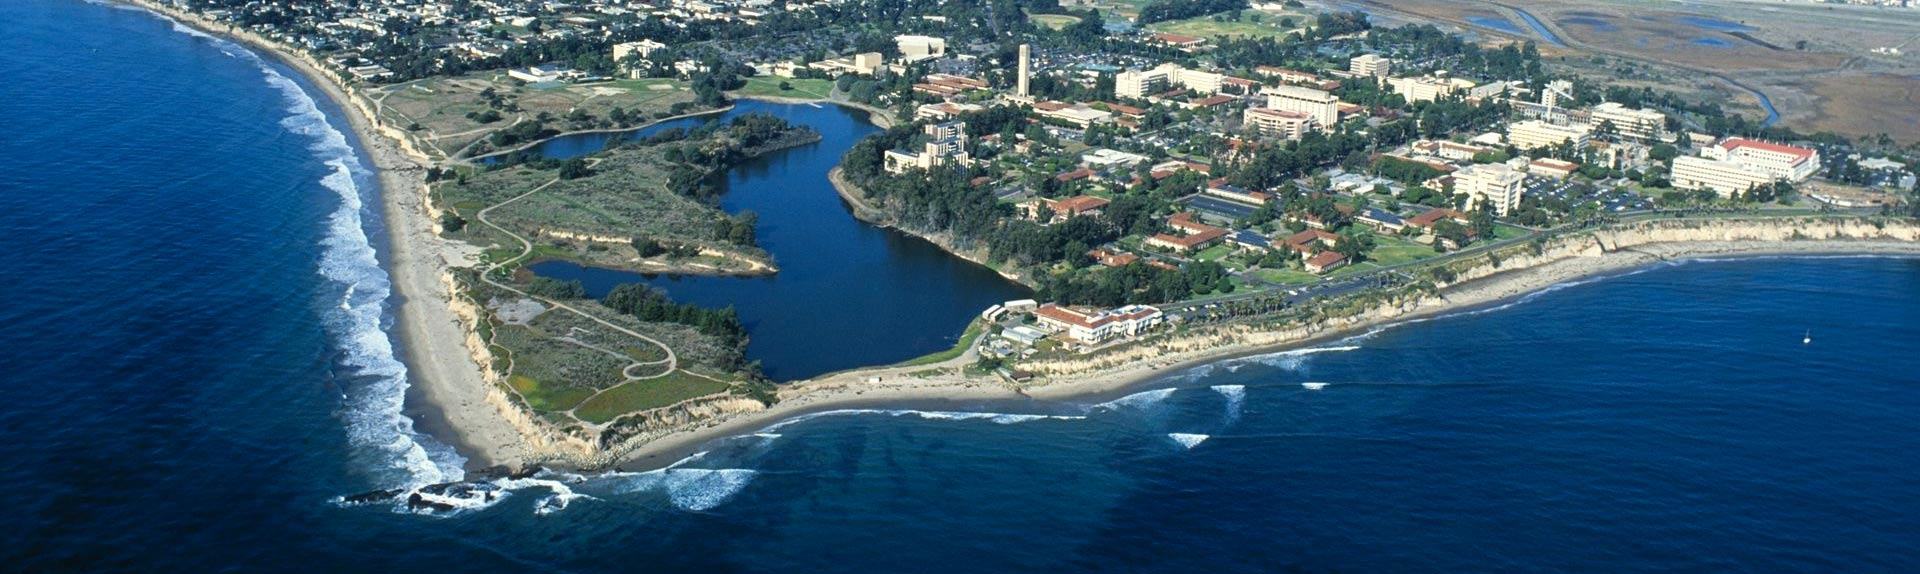 Ucsb best courses